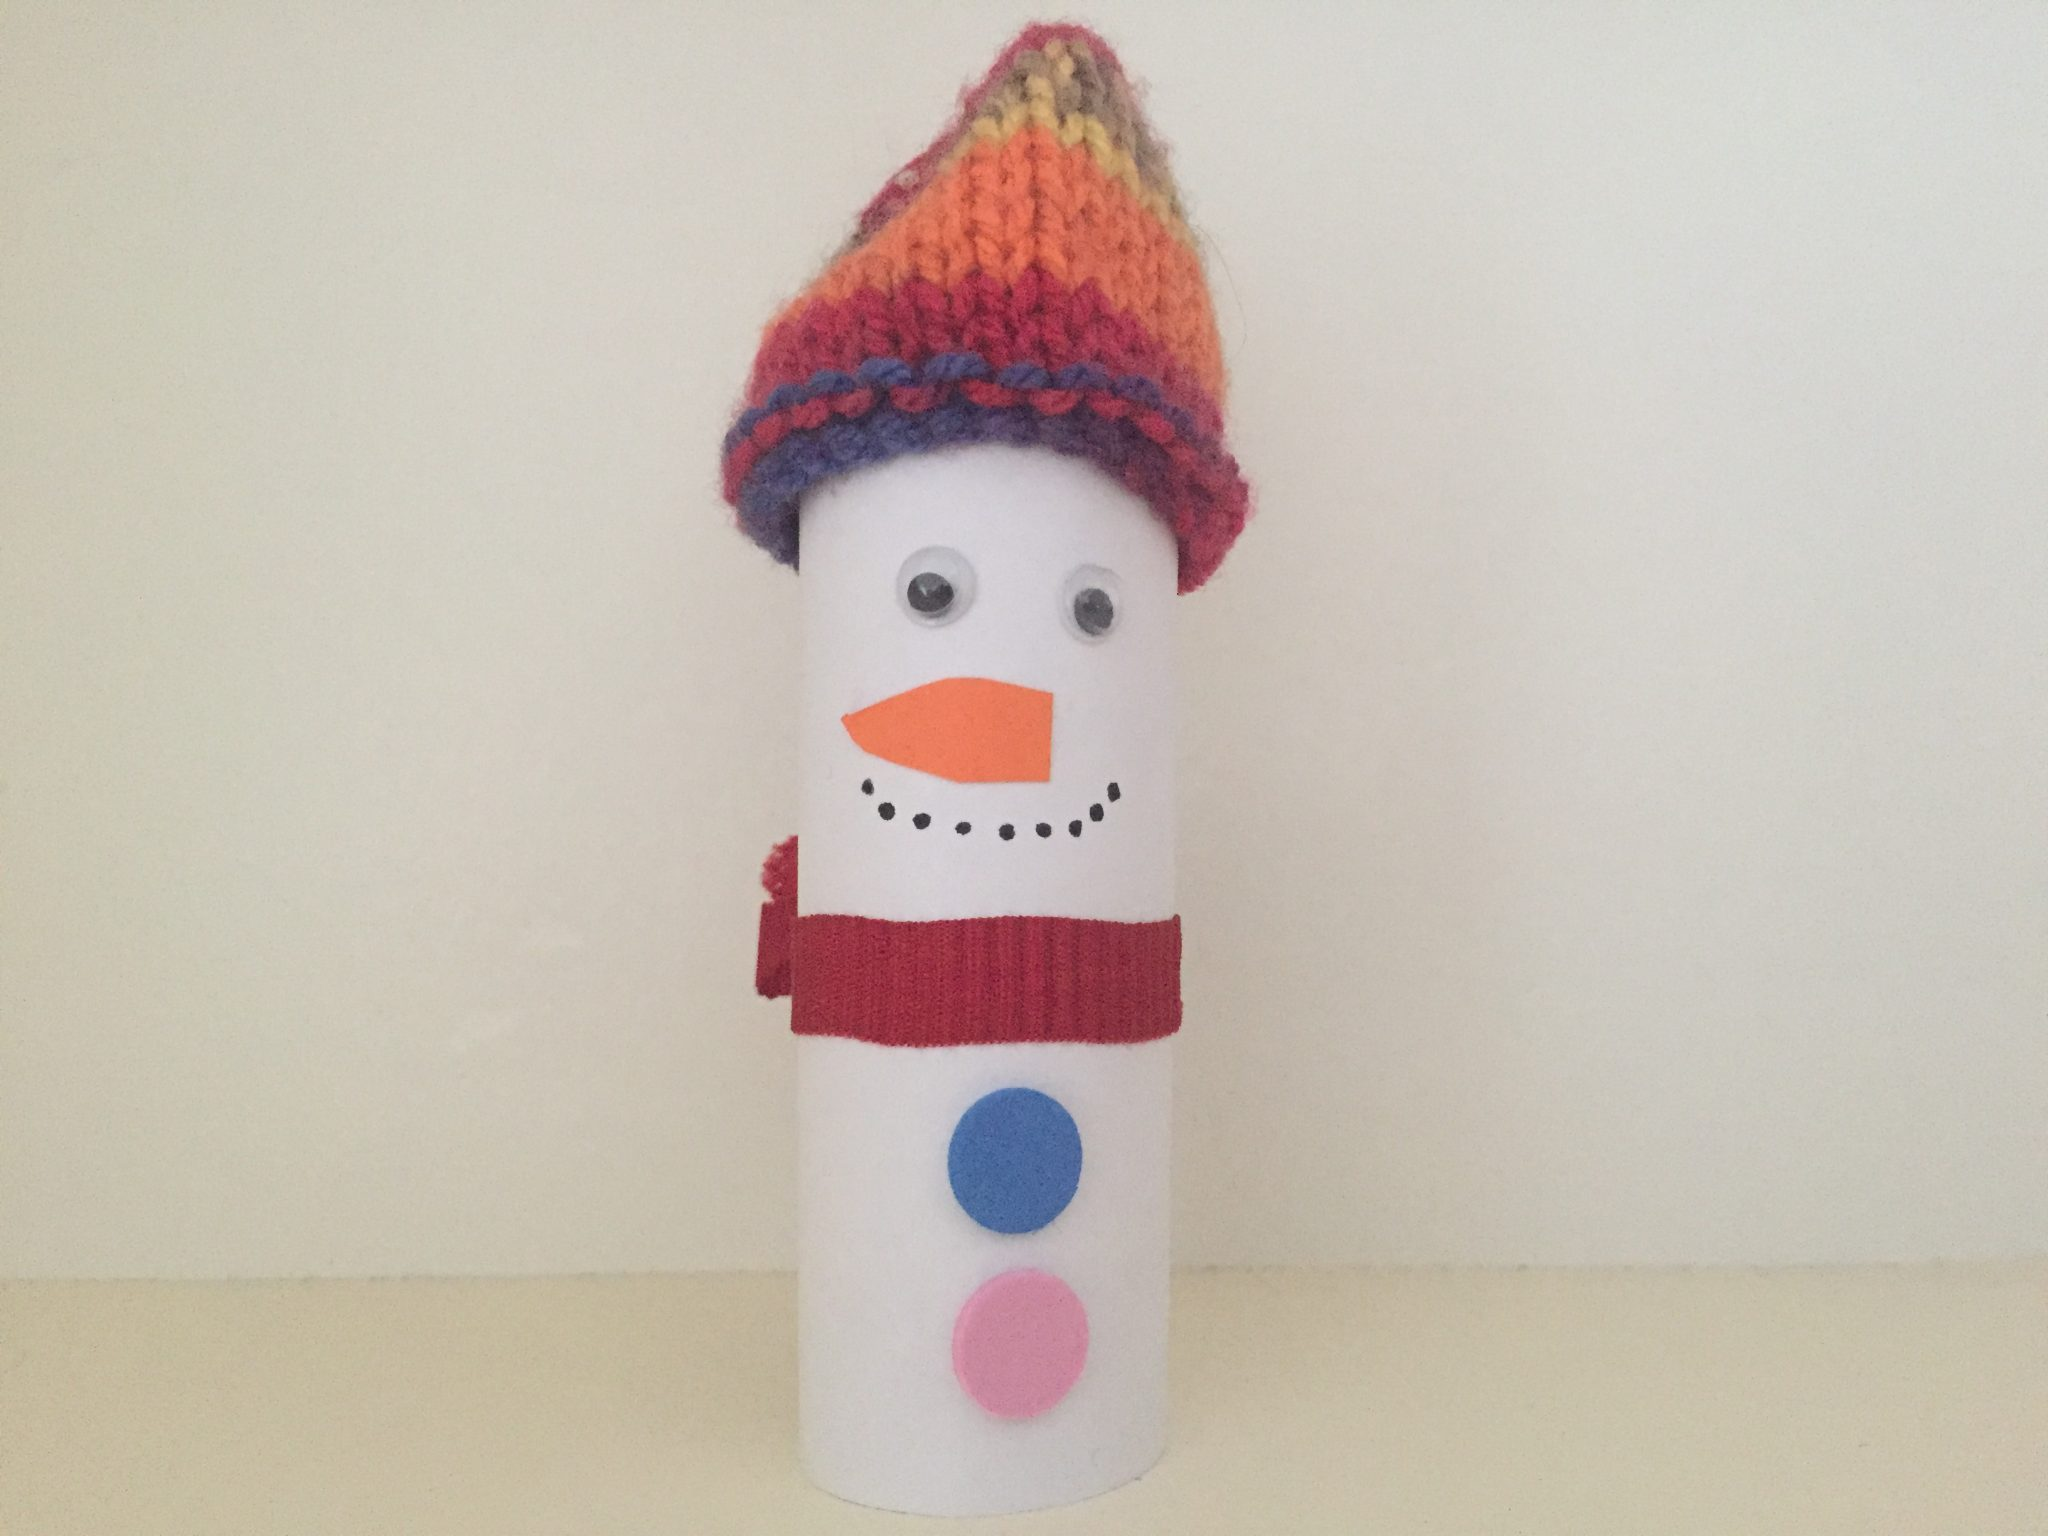 Christmas-crafts-for-kids-Snowman-with-a-woolly-hat